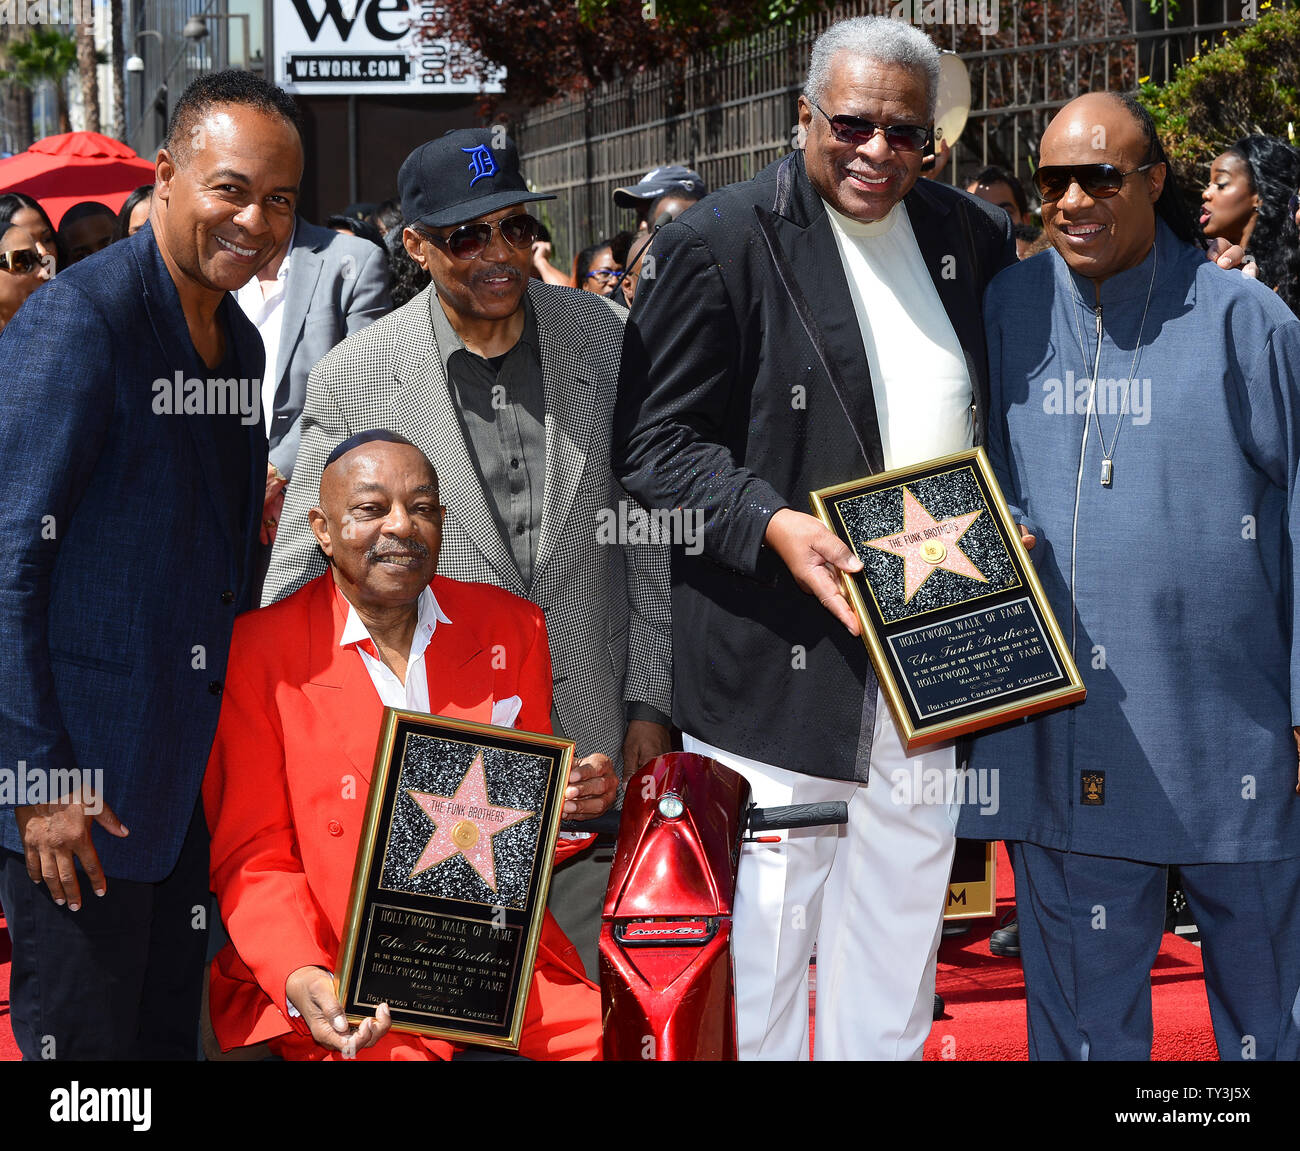 Eddie Willis (L) and Jack Ashford, the remaining survivors of The Funk Brothers, hold replica plaques during an unveiling ceremony, honoring them with the 2,493rd star on the Hollywood Walk of Fame in Los Angeles on March 21, 2013. The pair are joined by Ray Parker Jr., Paul Riser and Stevie Wonder (L-R).  UPI/Jim Ruymen - Stock Image